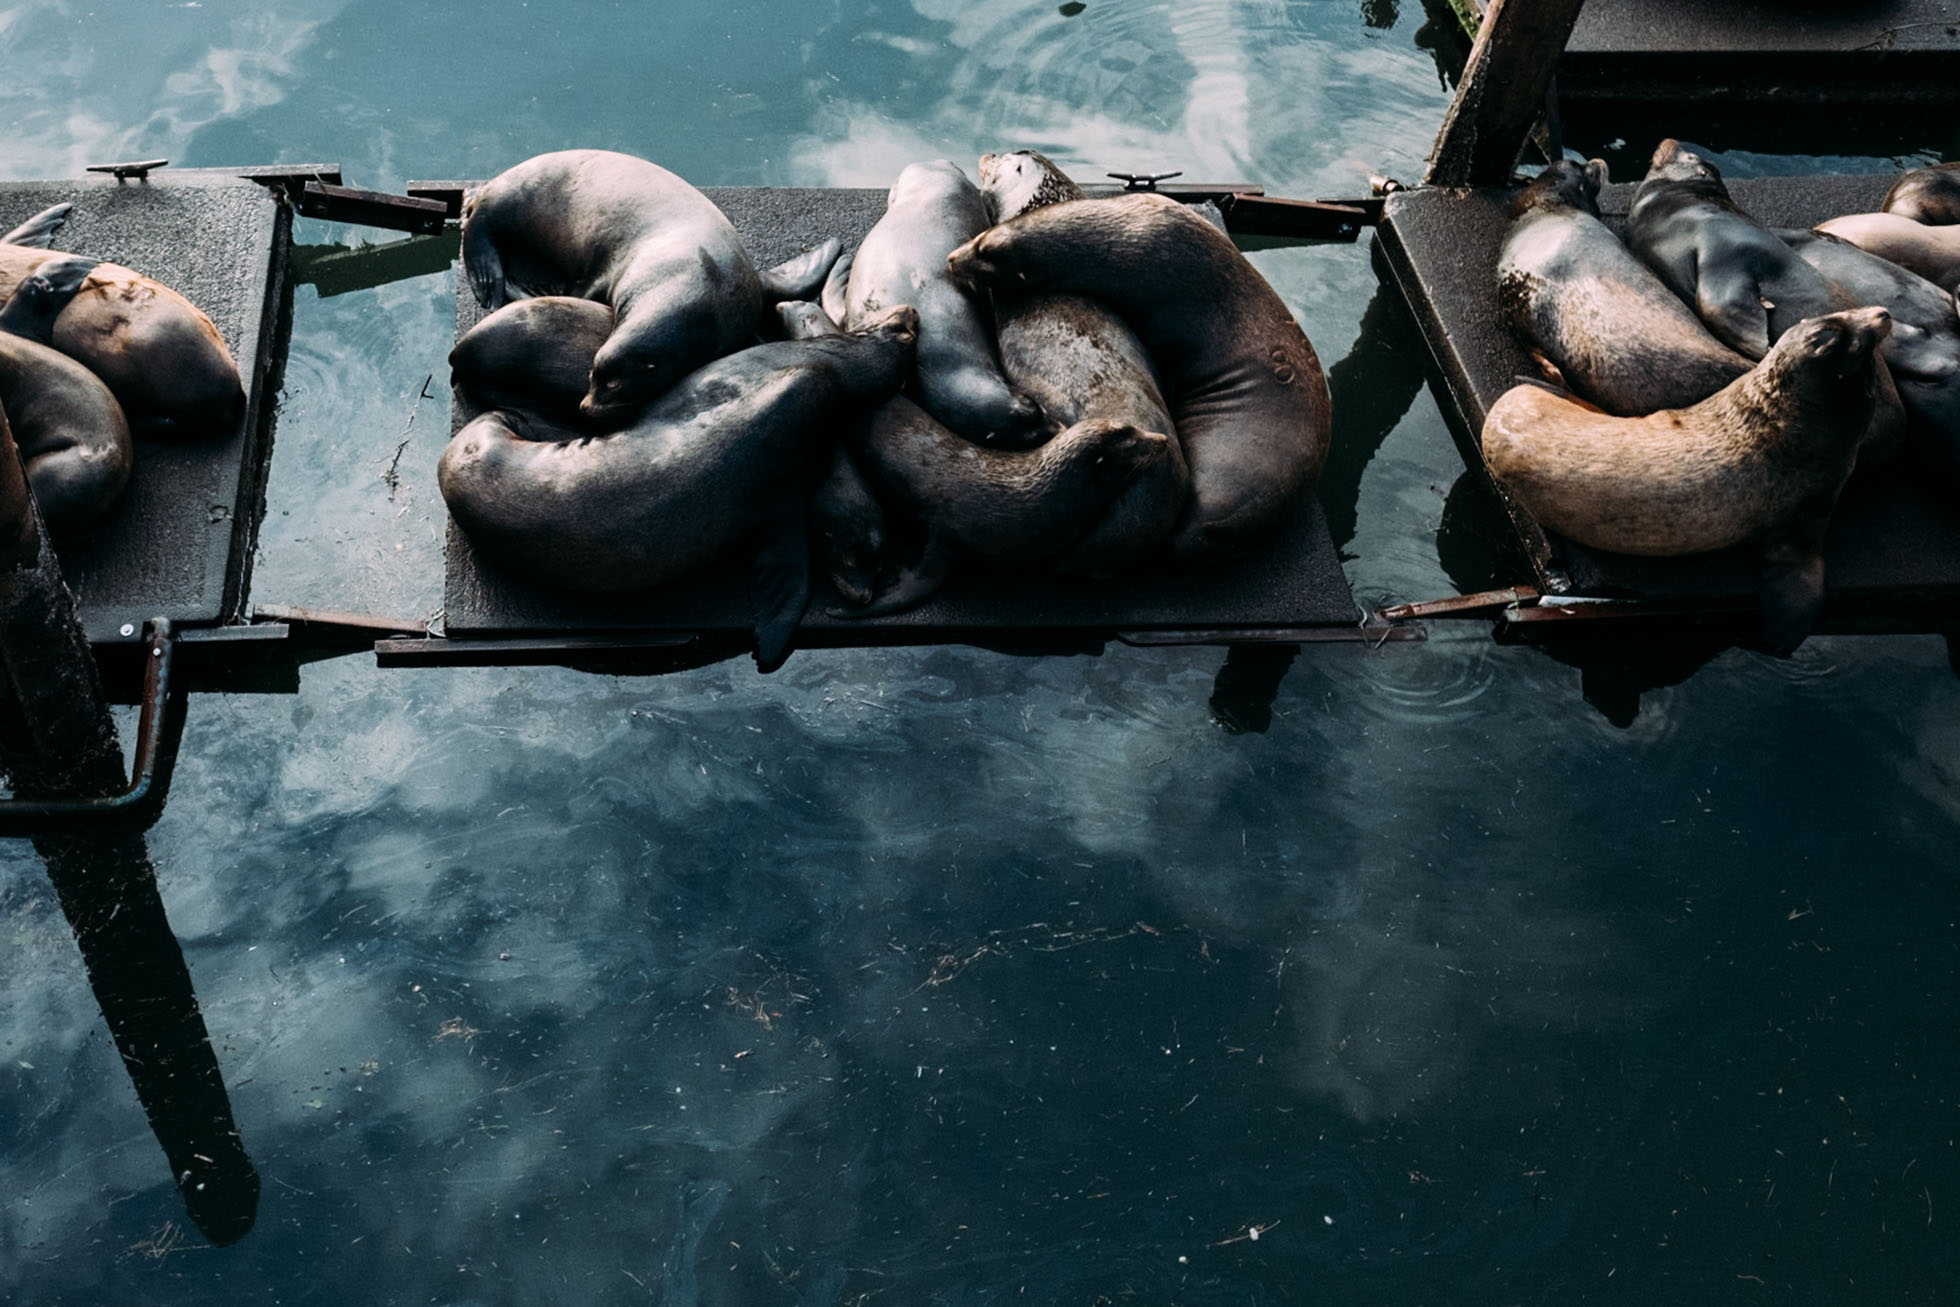 Sealions on the docks of newport oregon coast water